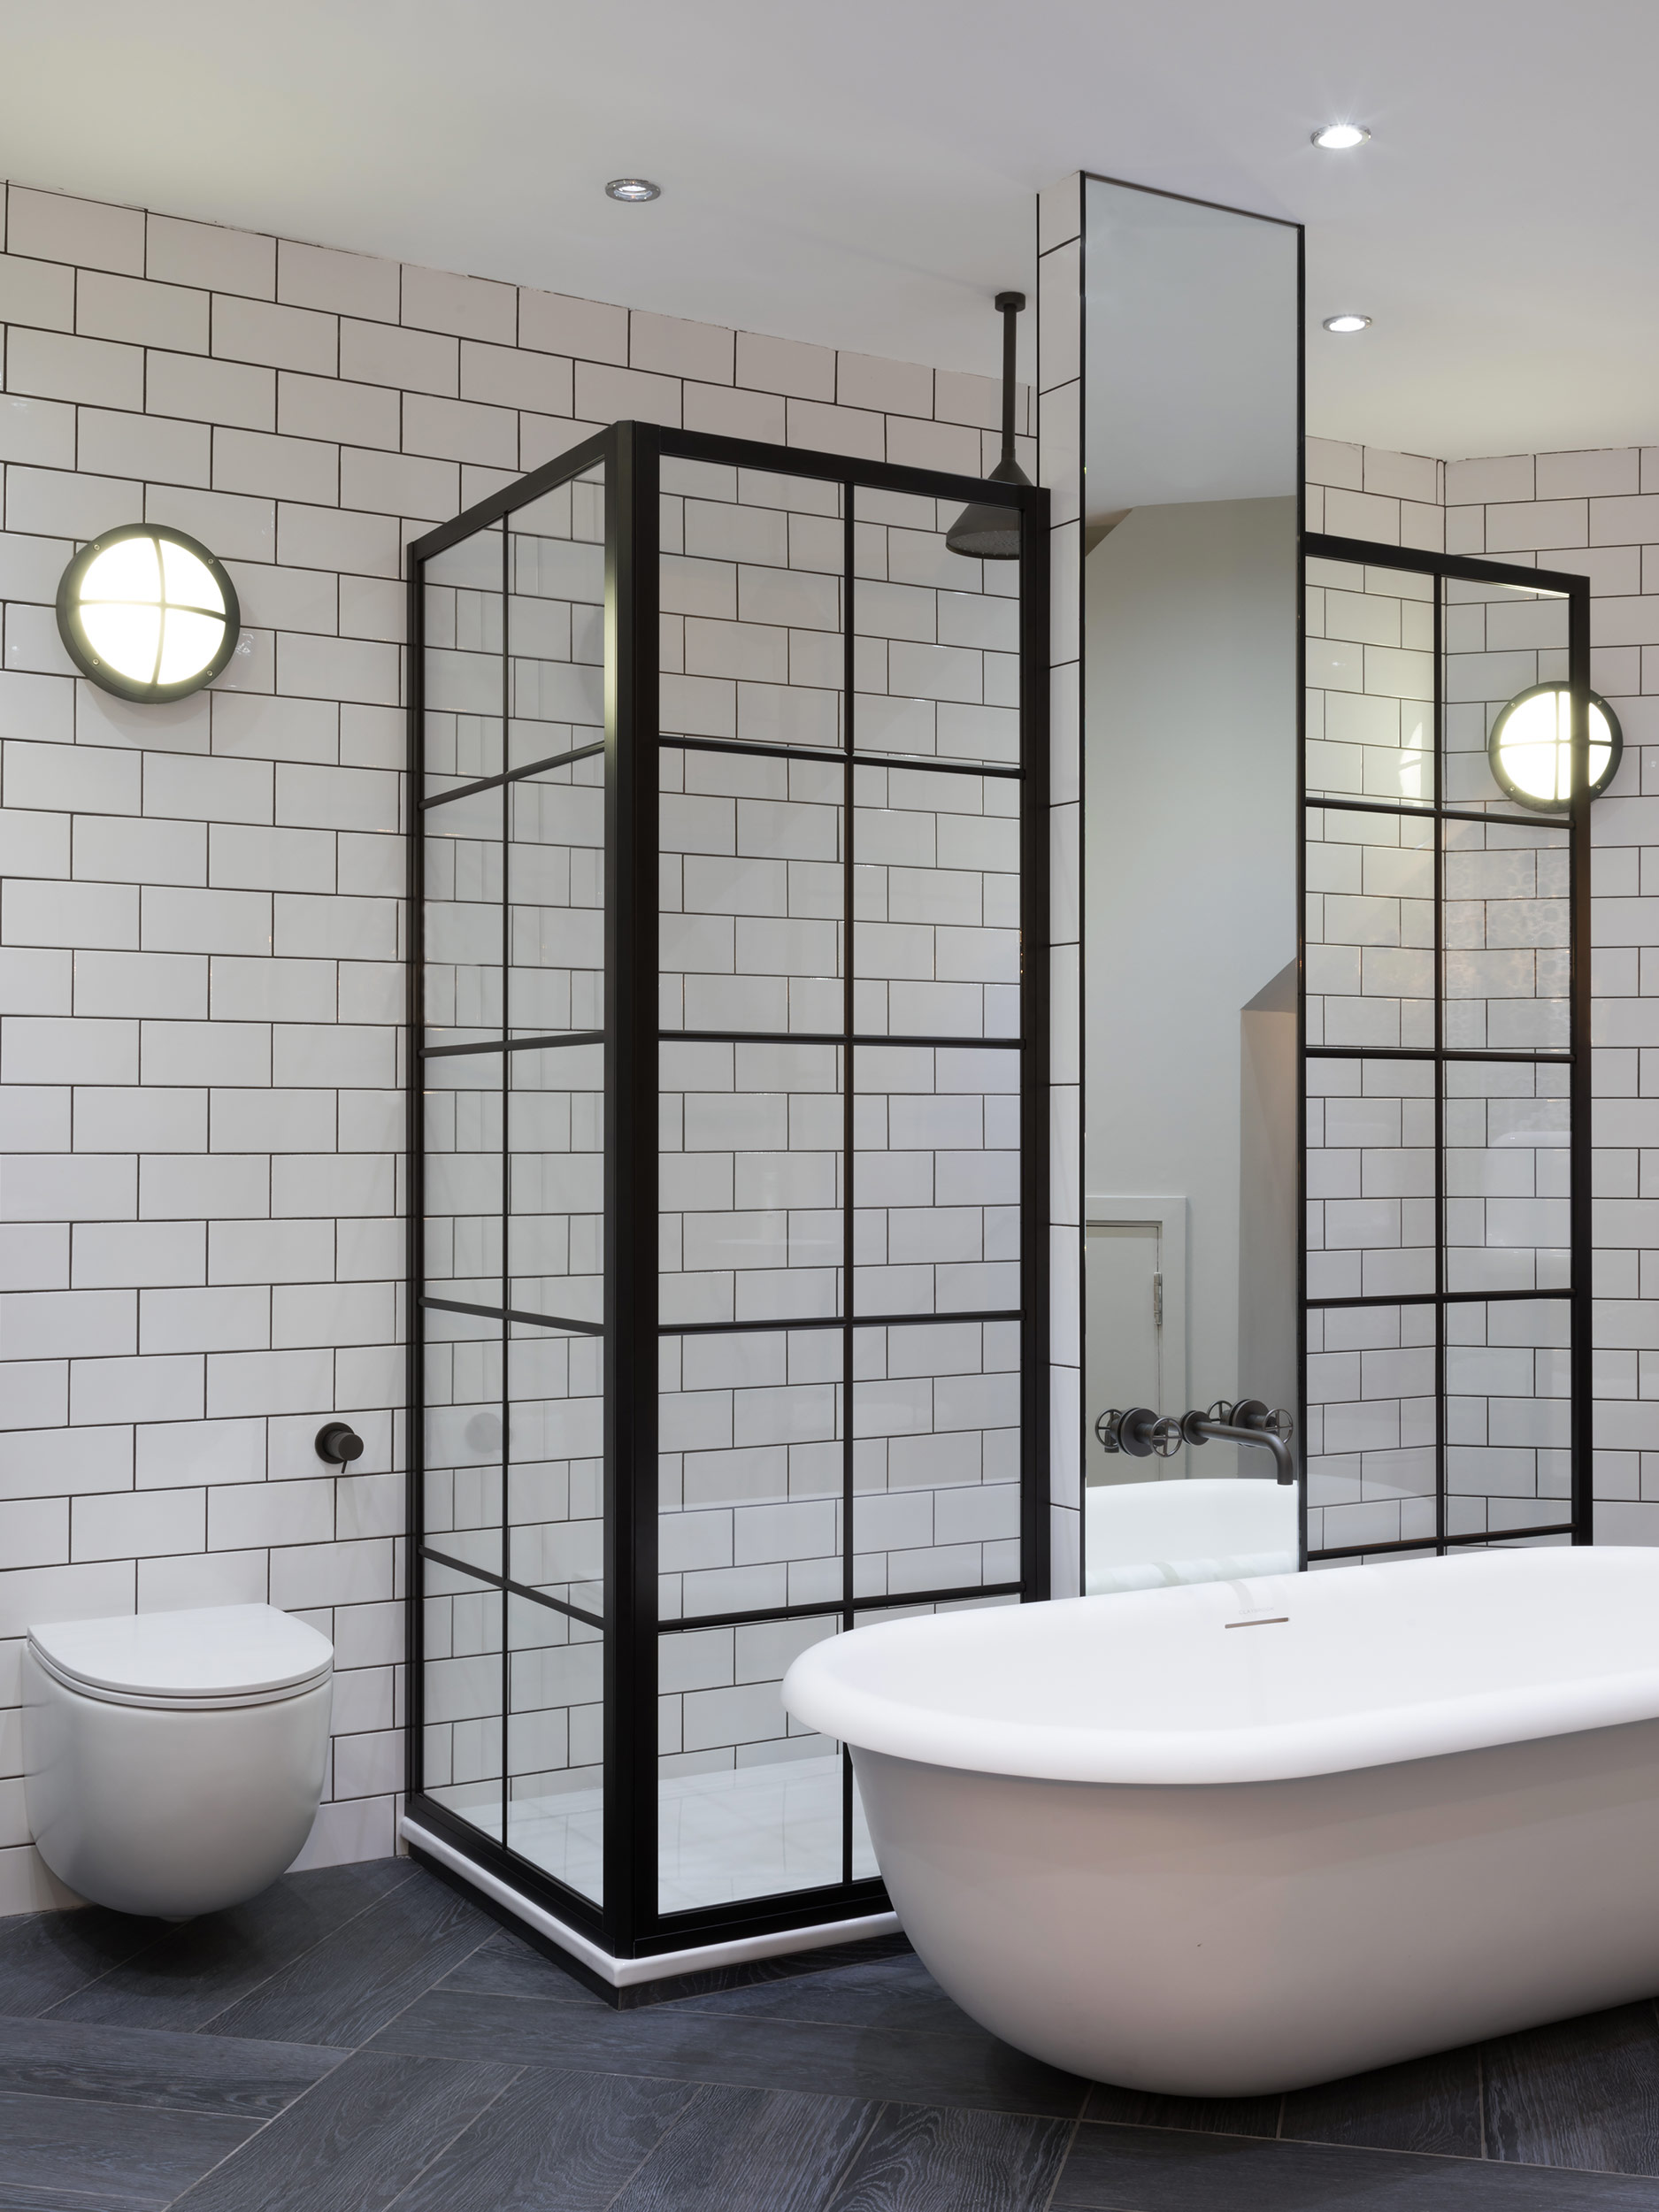 West One Bathrooms Knightsbridge Showroom Thurloe Place 2a